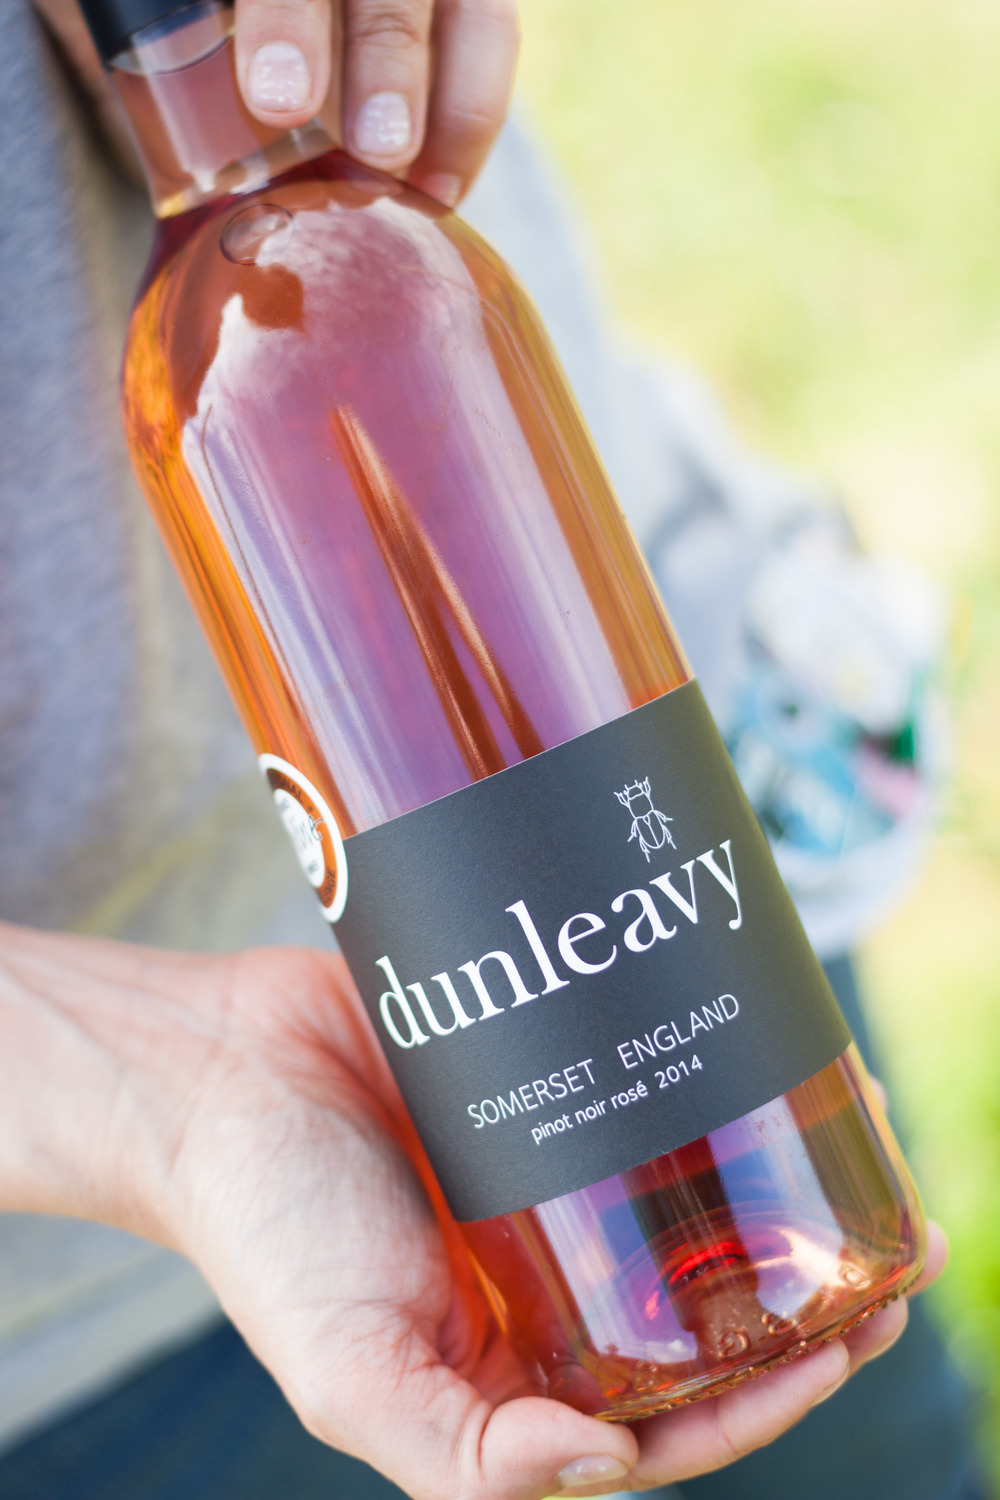 dunleavy_vineyard_bottle